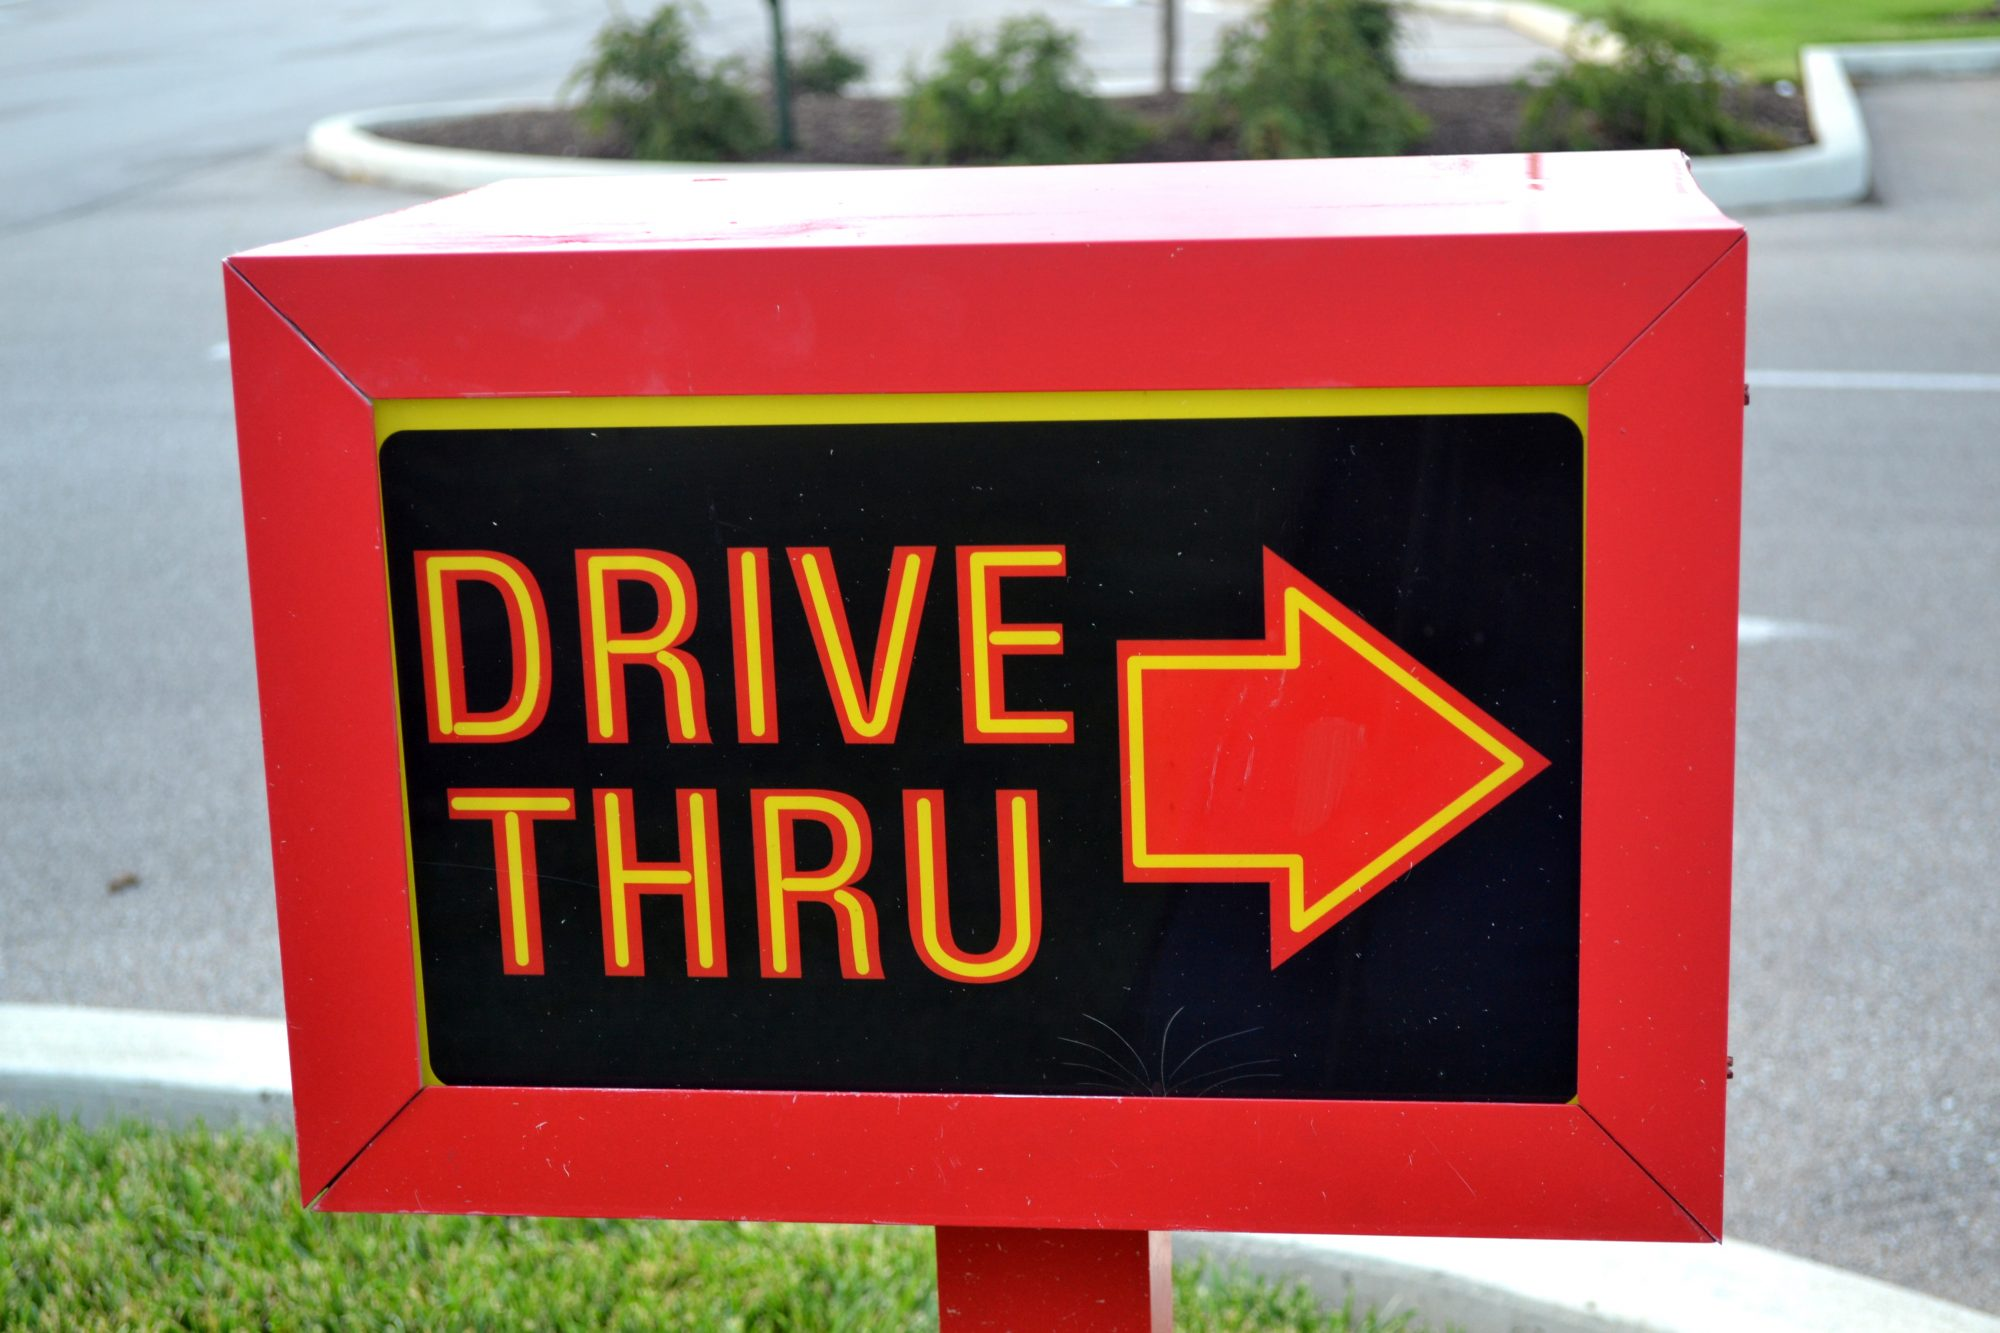 Drive Thru Signage With an Arrow